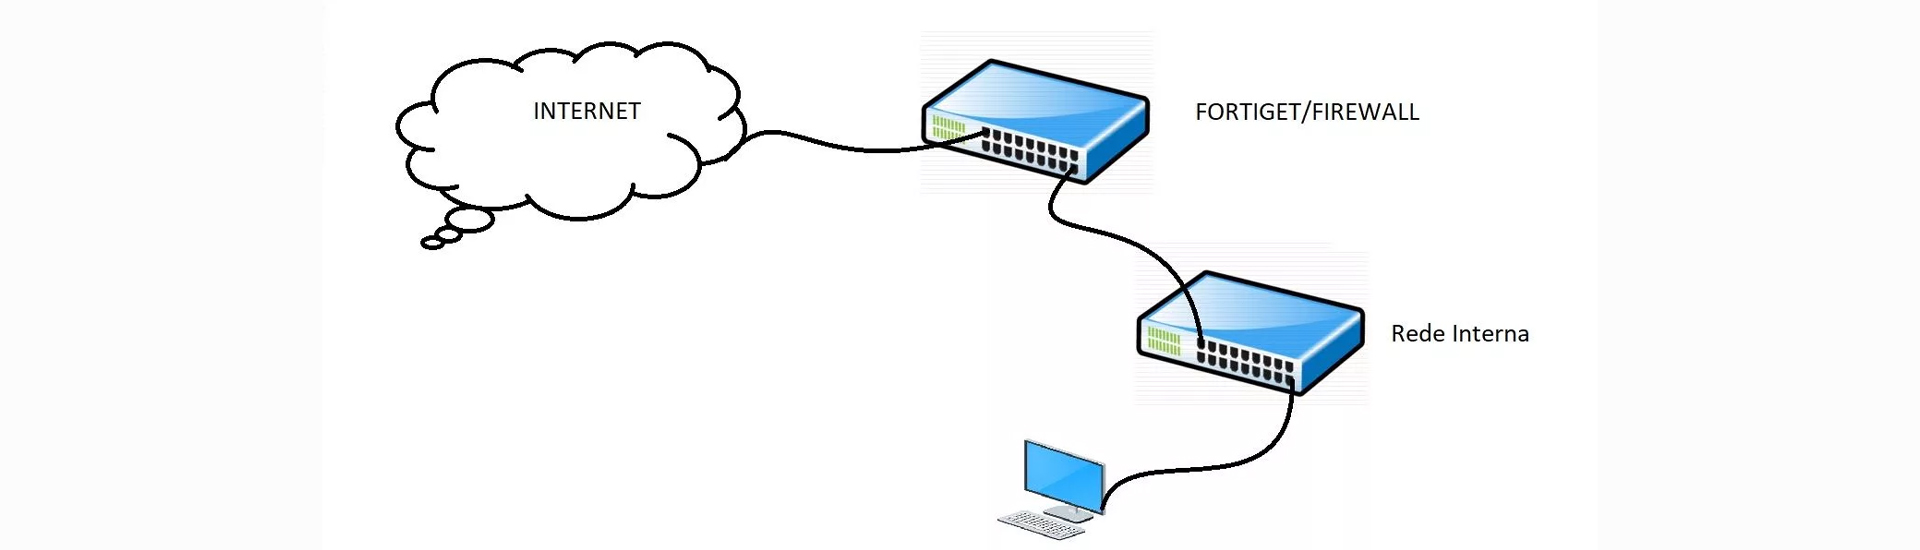 How a firewall in a computer network works